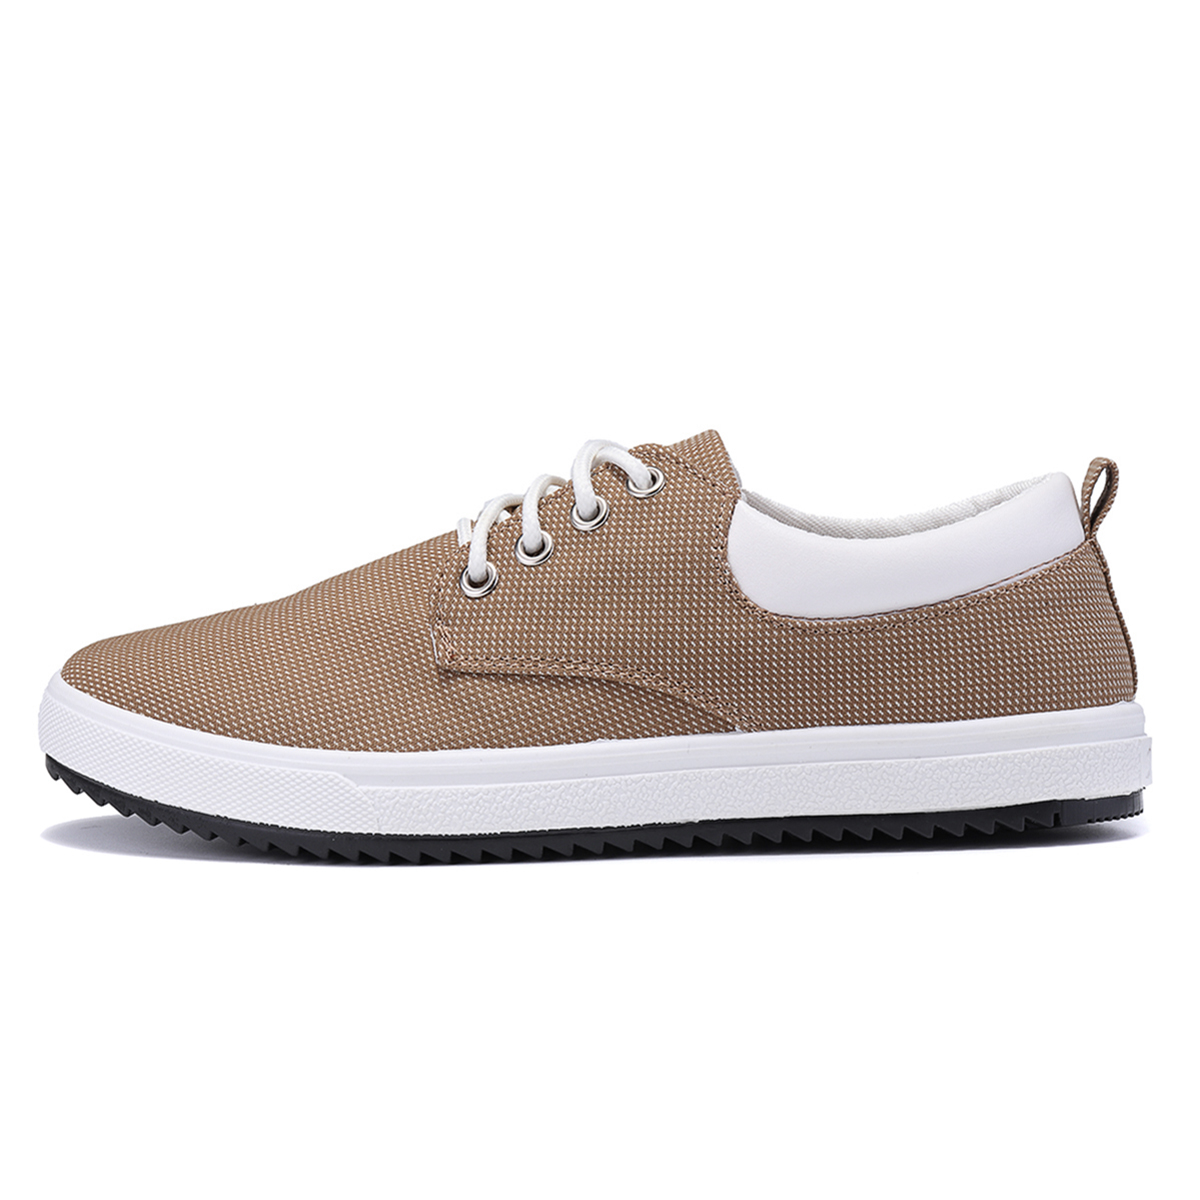 Men-039-s-Canvas-Shoes-Low-Top-Sports-Sneakers-Flat-Breathable-Casual-Outdoor-Walk